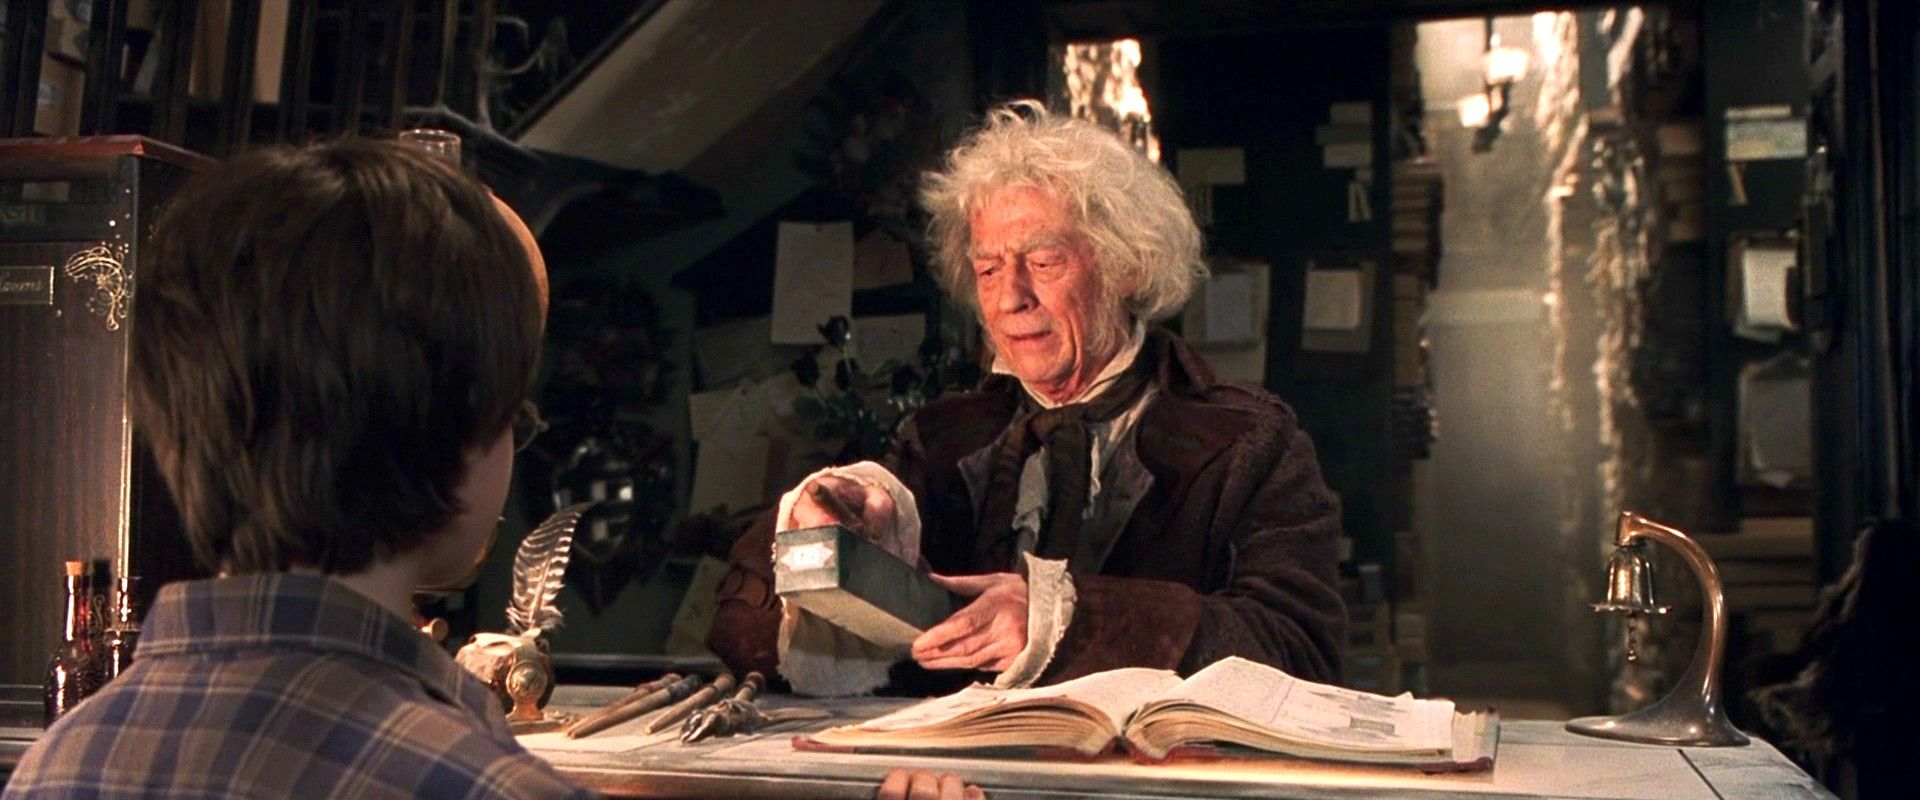 John Hurt As Garrick Ollivander Helping Harry Buy His First Wand Garrick Has Been The Family Shopkeeper At Ollivanders Wand Shop In Diagon Alley Since The 1930